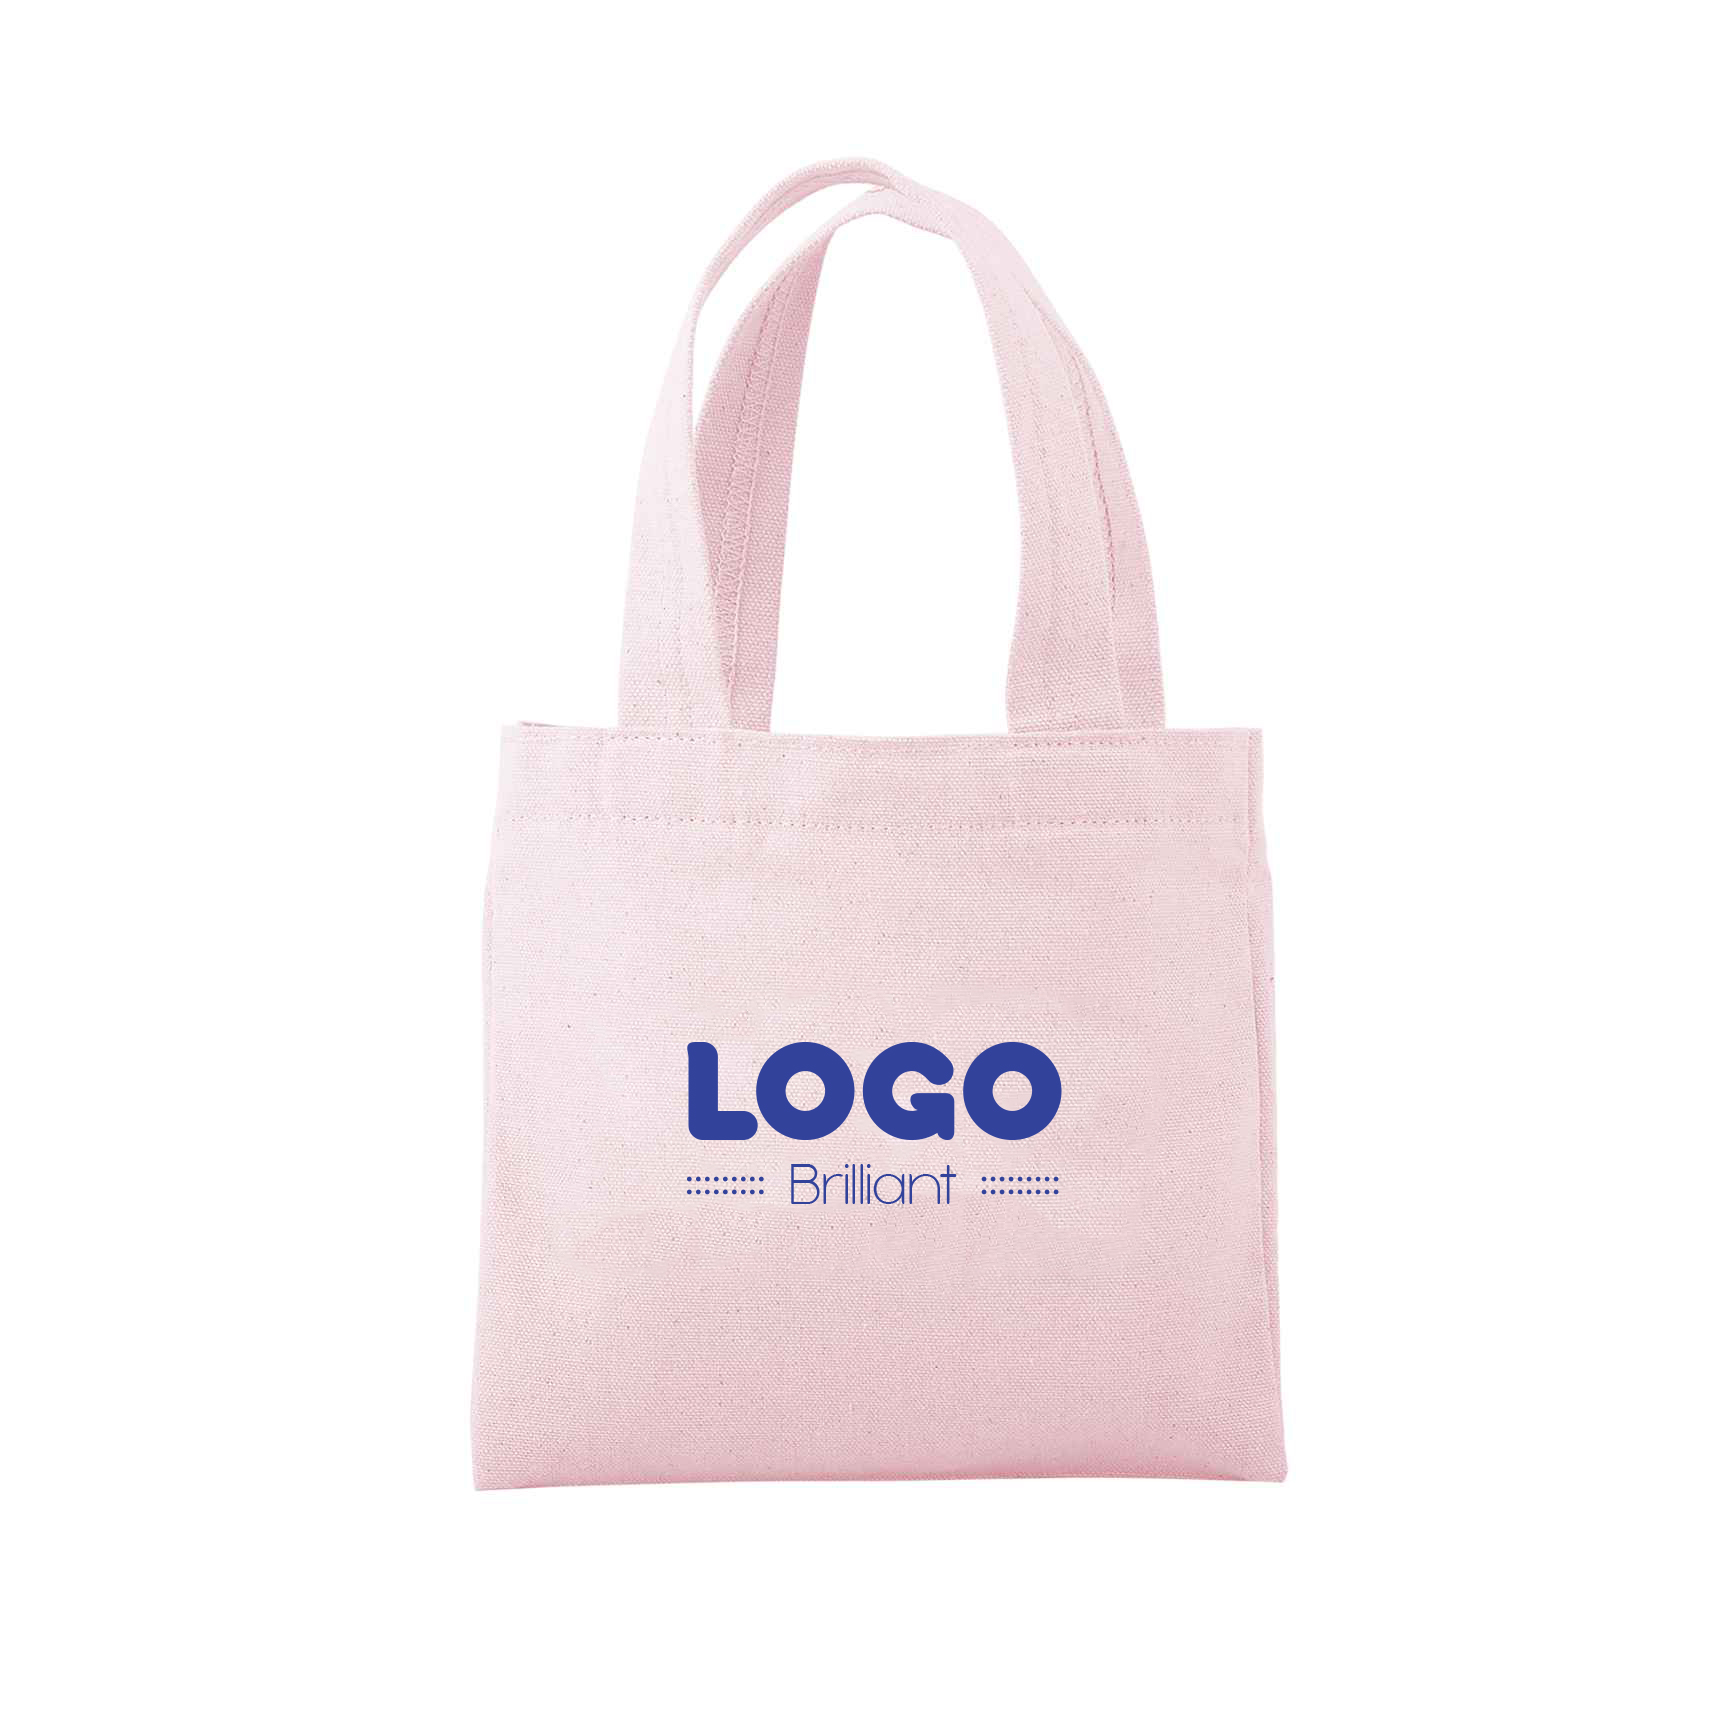 134751 teeny tote one color imprint full bleed choice of canvas color